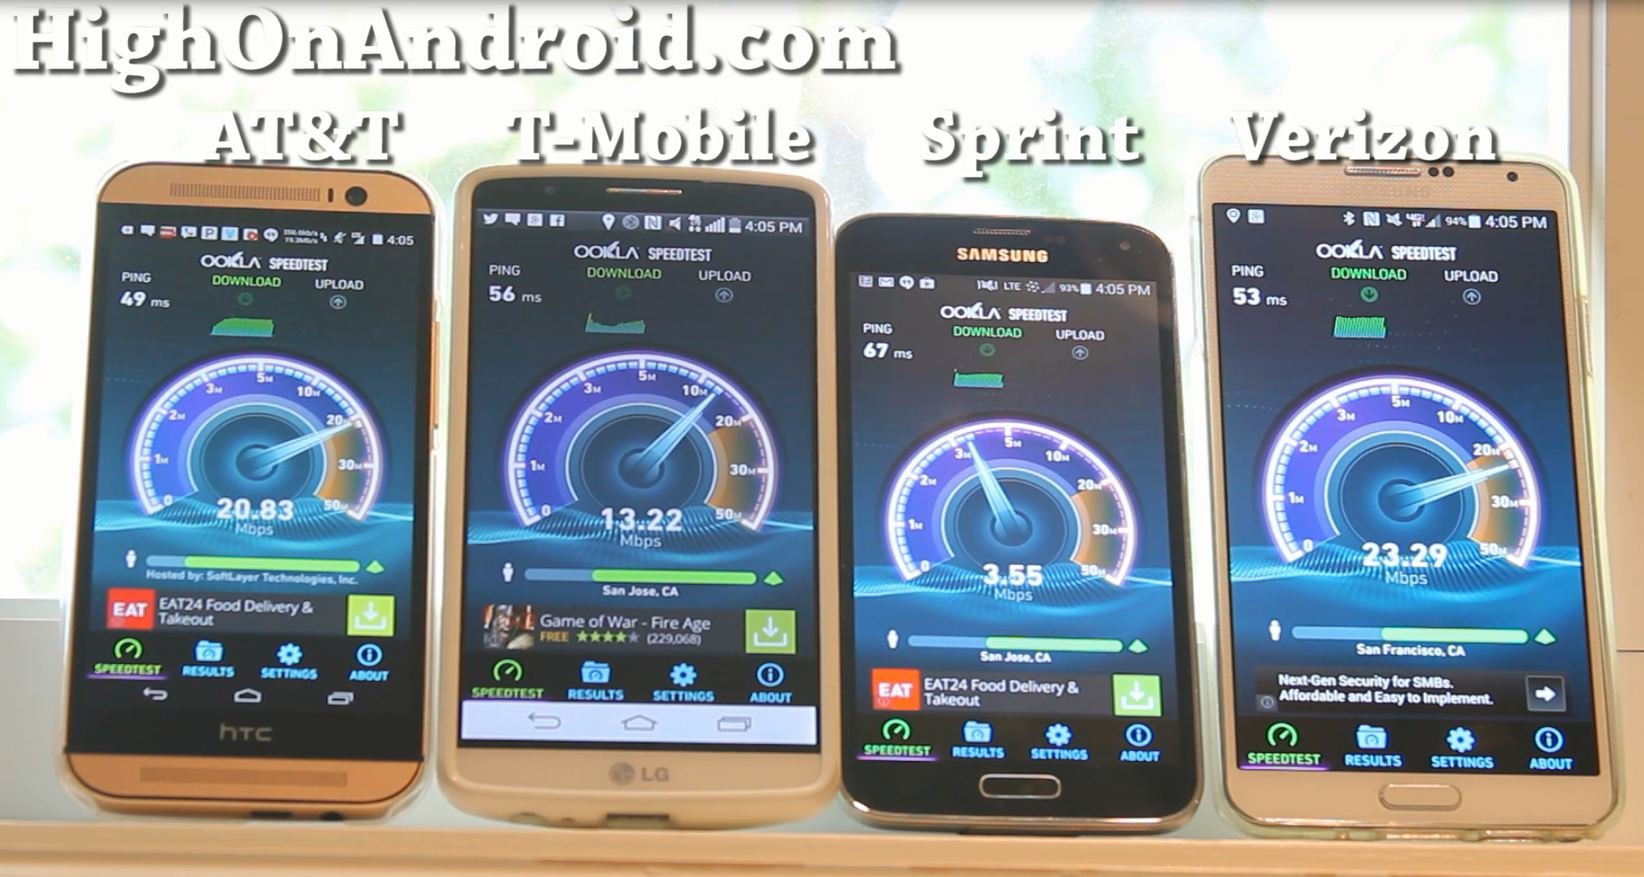 At T Vs T Mobile Vs Sprint Vs Verizon 4g Lte Speed Test Highonandroid Com